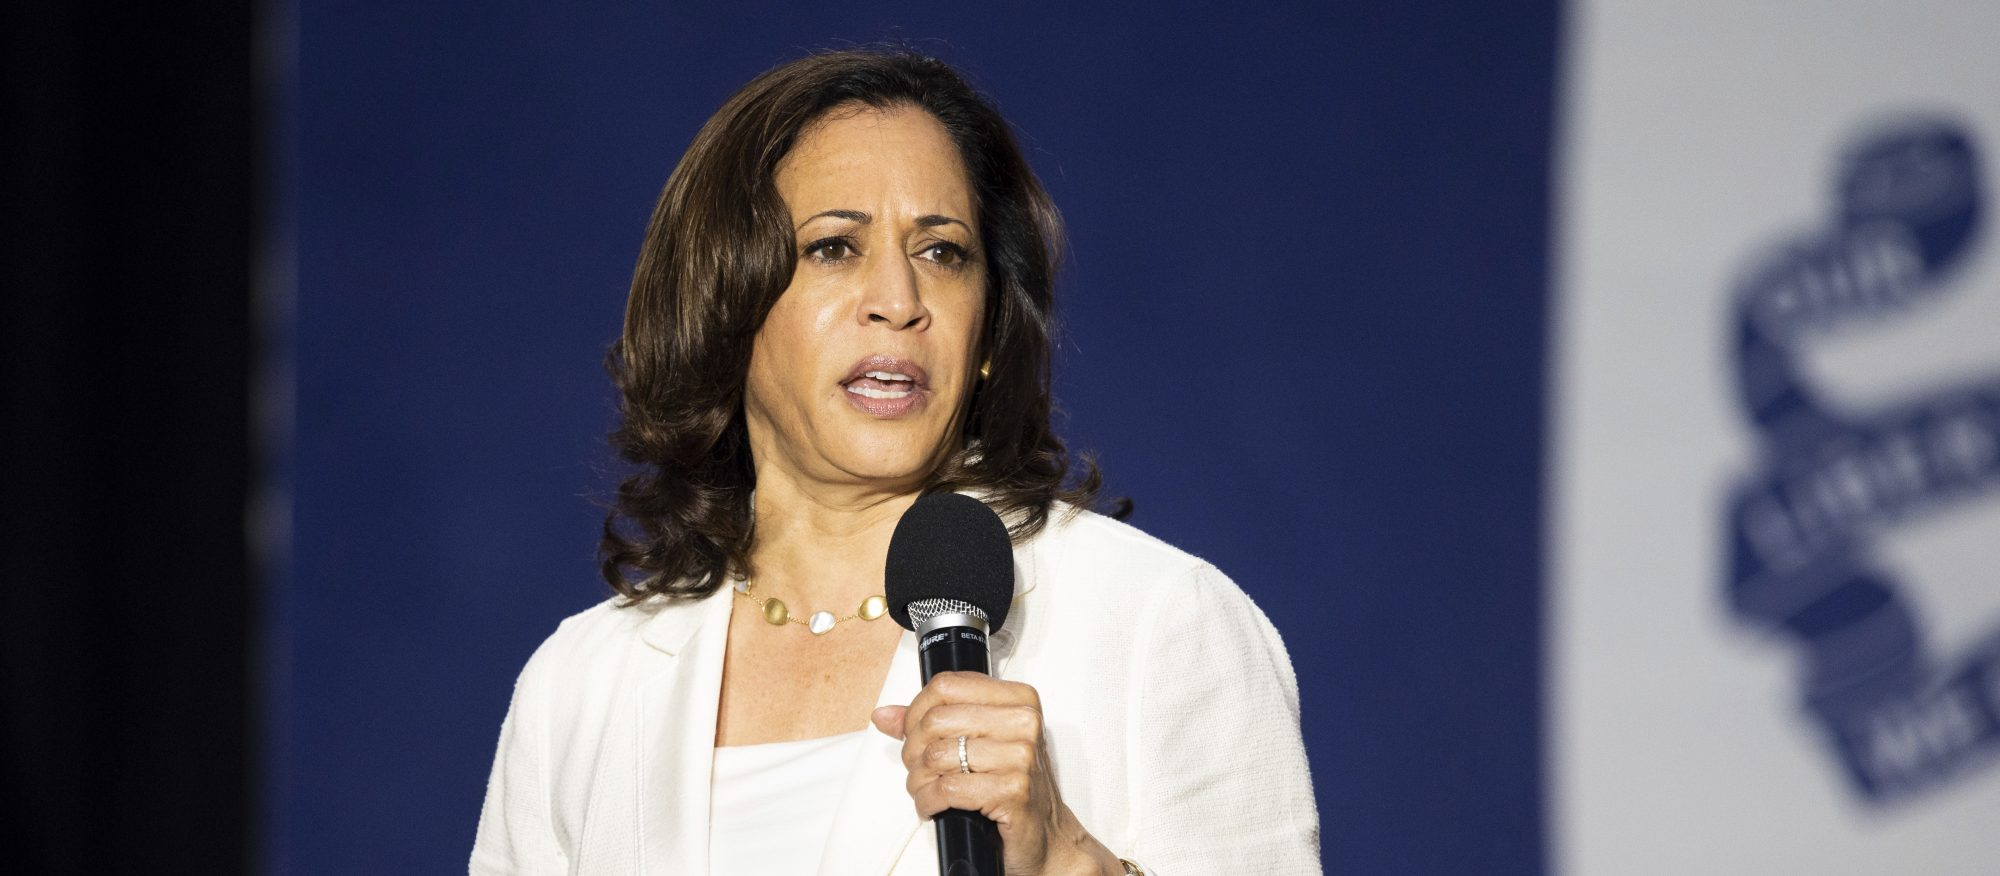 As D A Kamala Harris Prosecuted A Mentally Ill Woman Shot By Police The Jury Didn T Buy It Calmatters